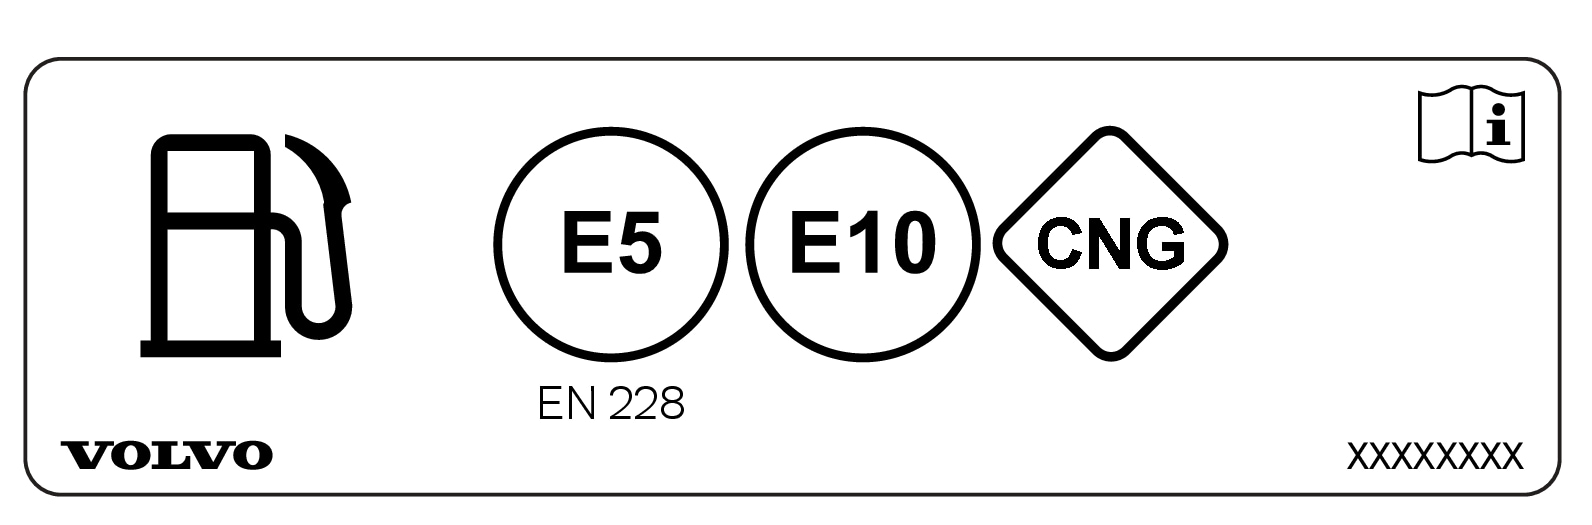 SuSi - 19w11 - Fuel label - Decal-gaseous fuels